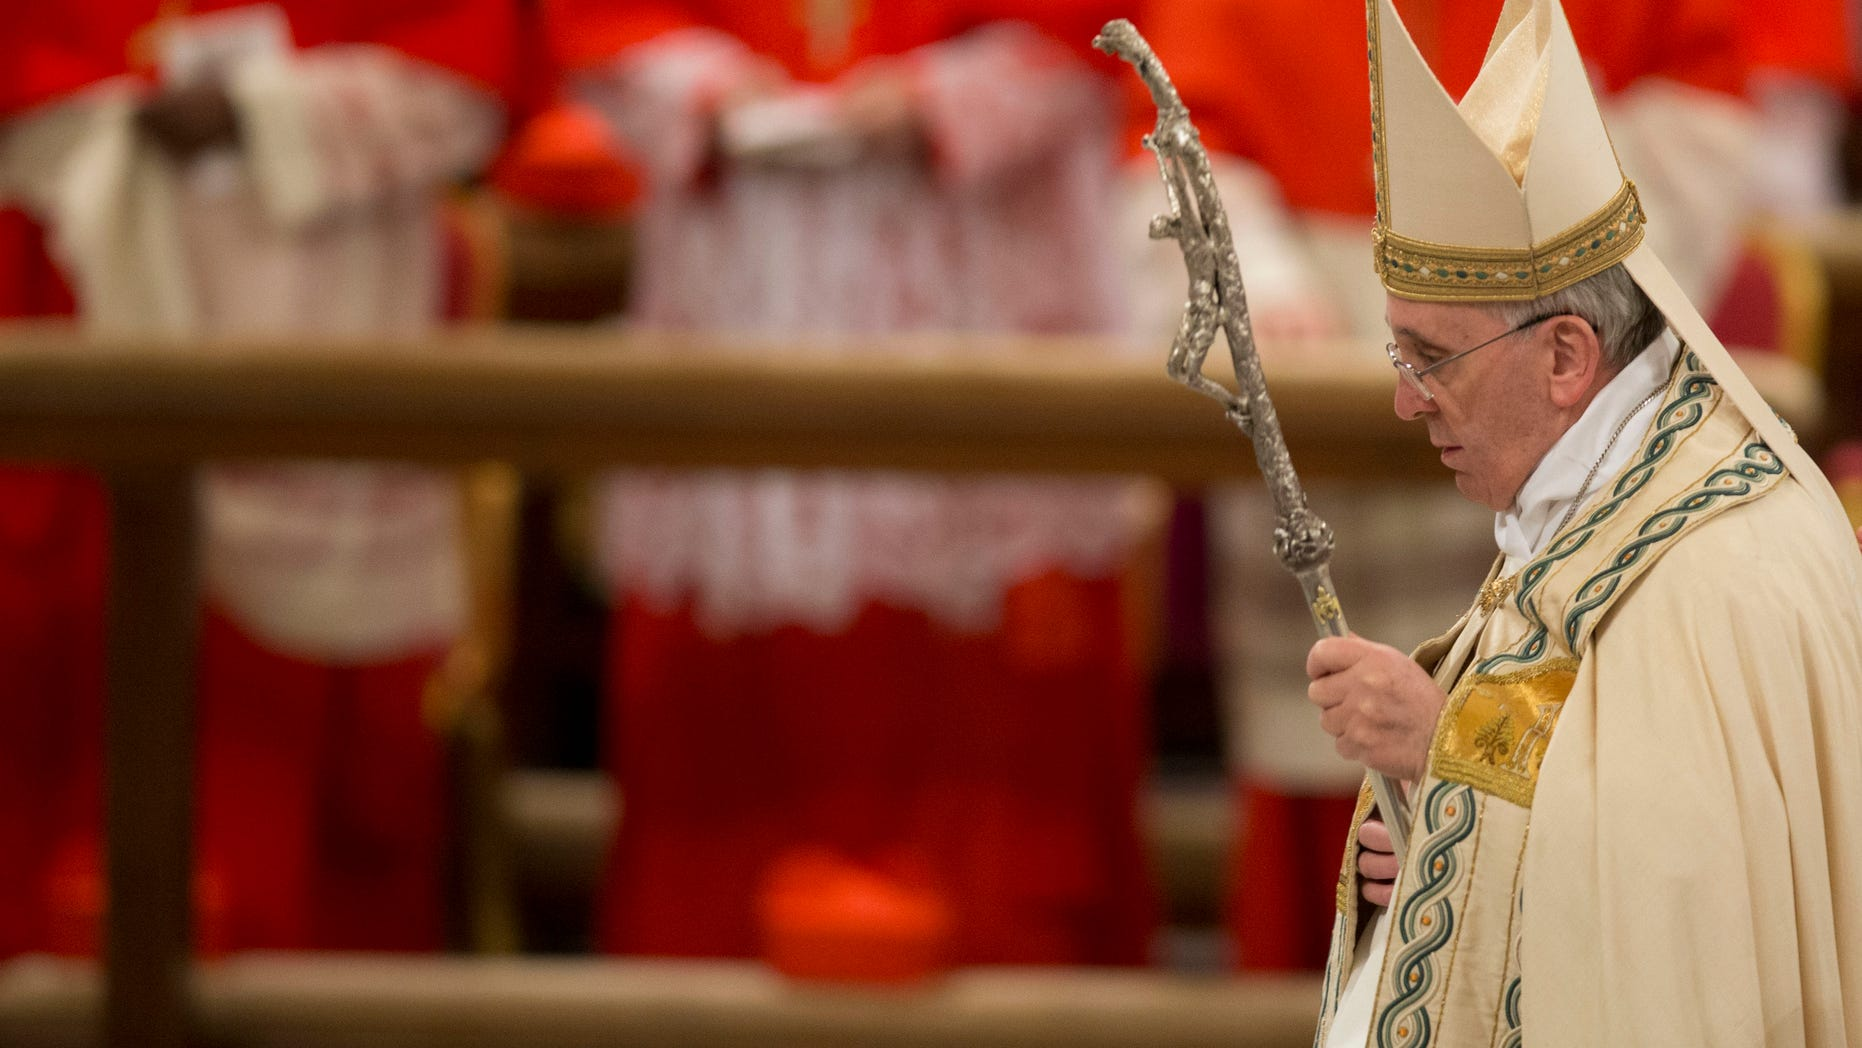 Pope Francis arrives to preside over a Vespers ceremony at Rome's St. Paul Basilica, at the Vatican, Saturday, Jan. 25, 2014. (AP Photo/Andrew Medichini)